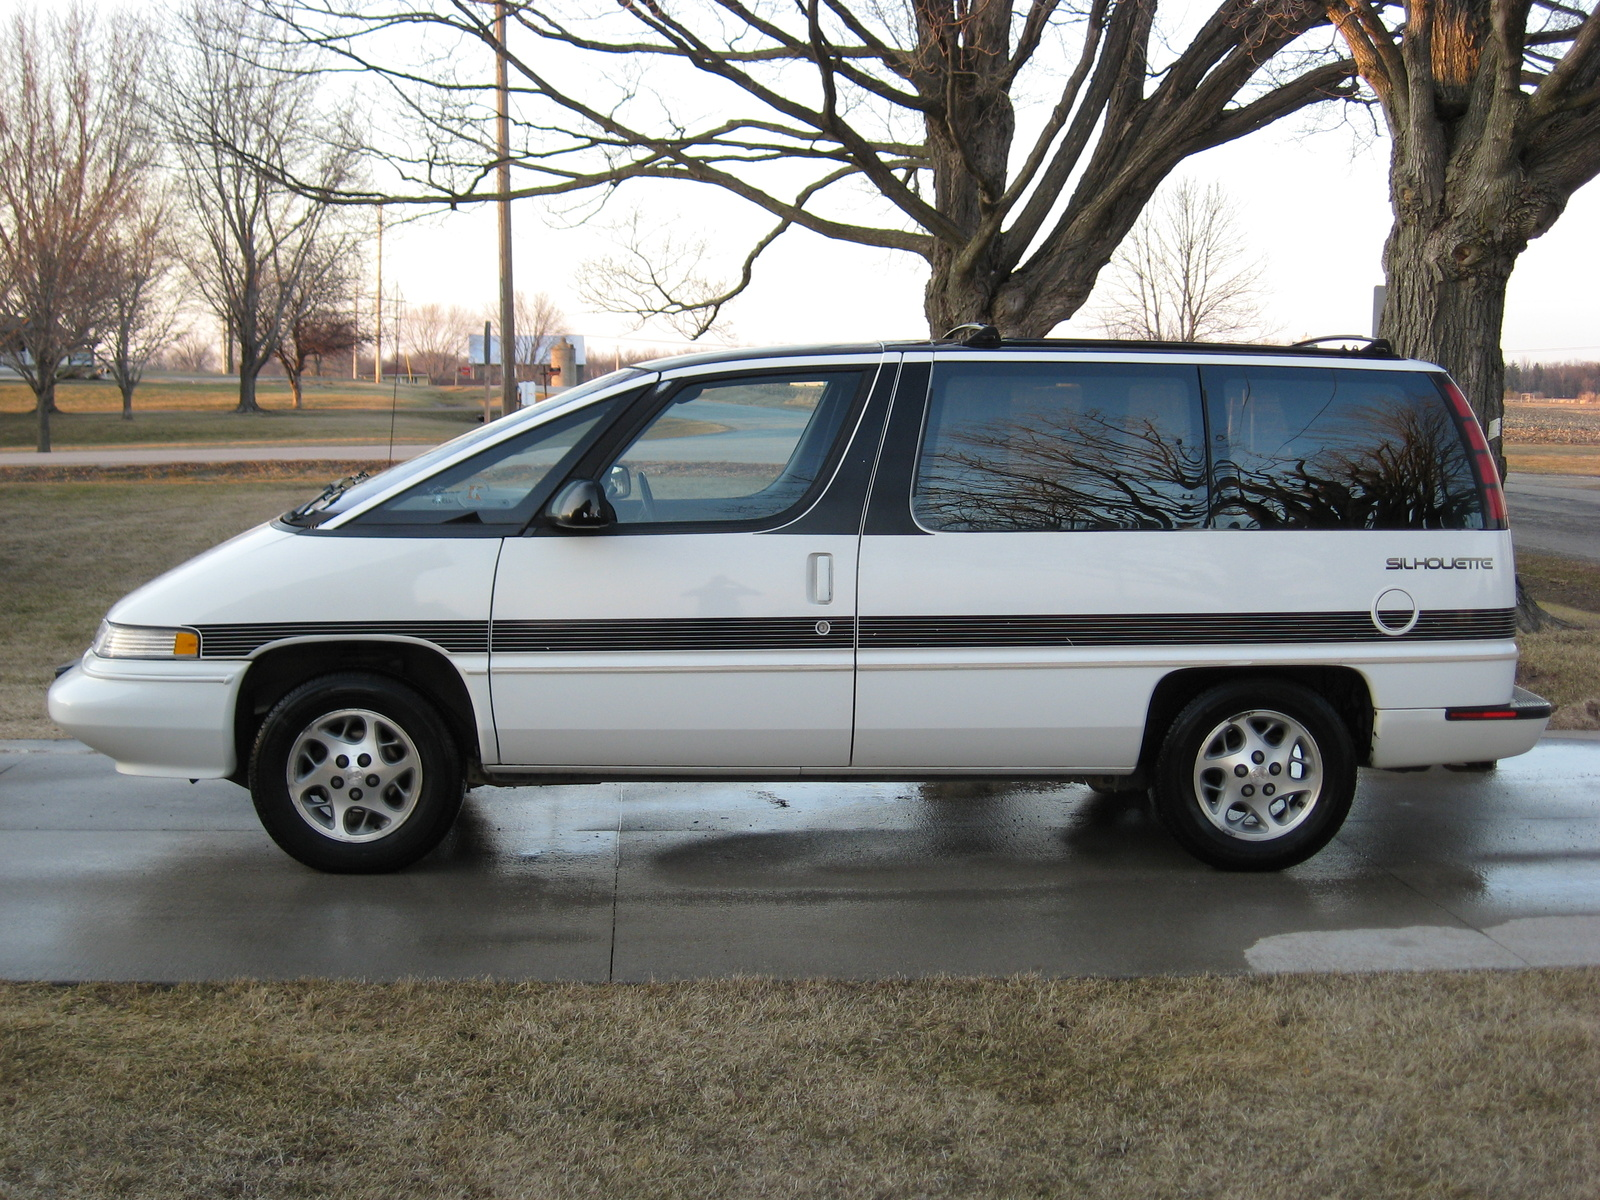 1990 Oldsmobile Silhouette - Pictures - 1990 Oldsmobile Silhouette 3 ...